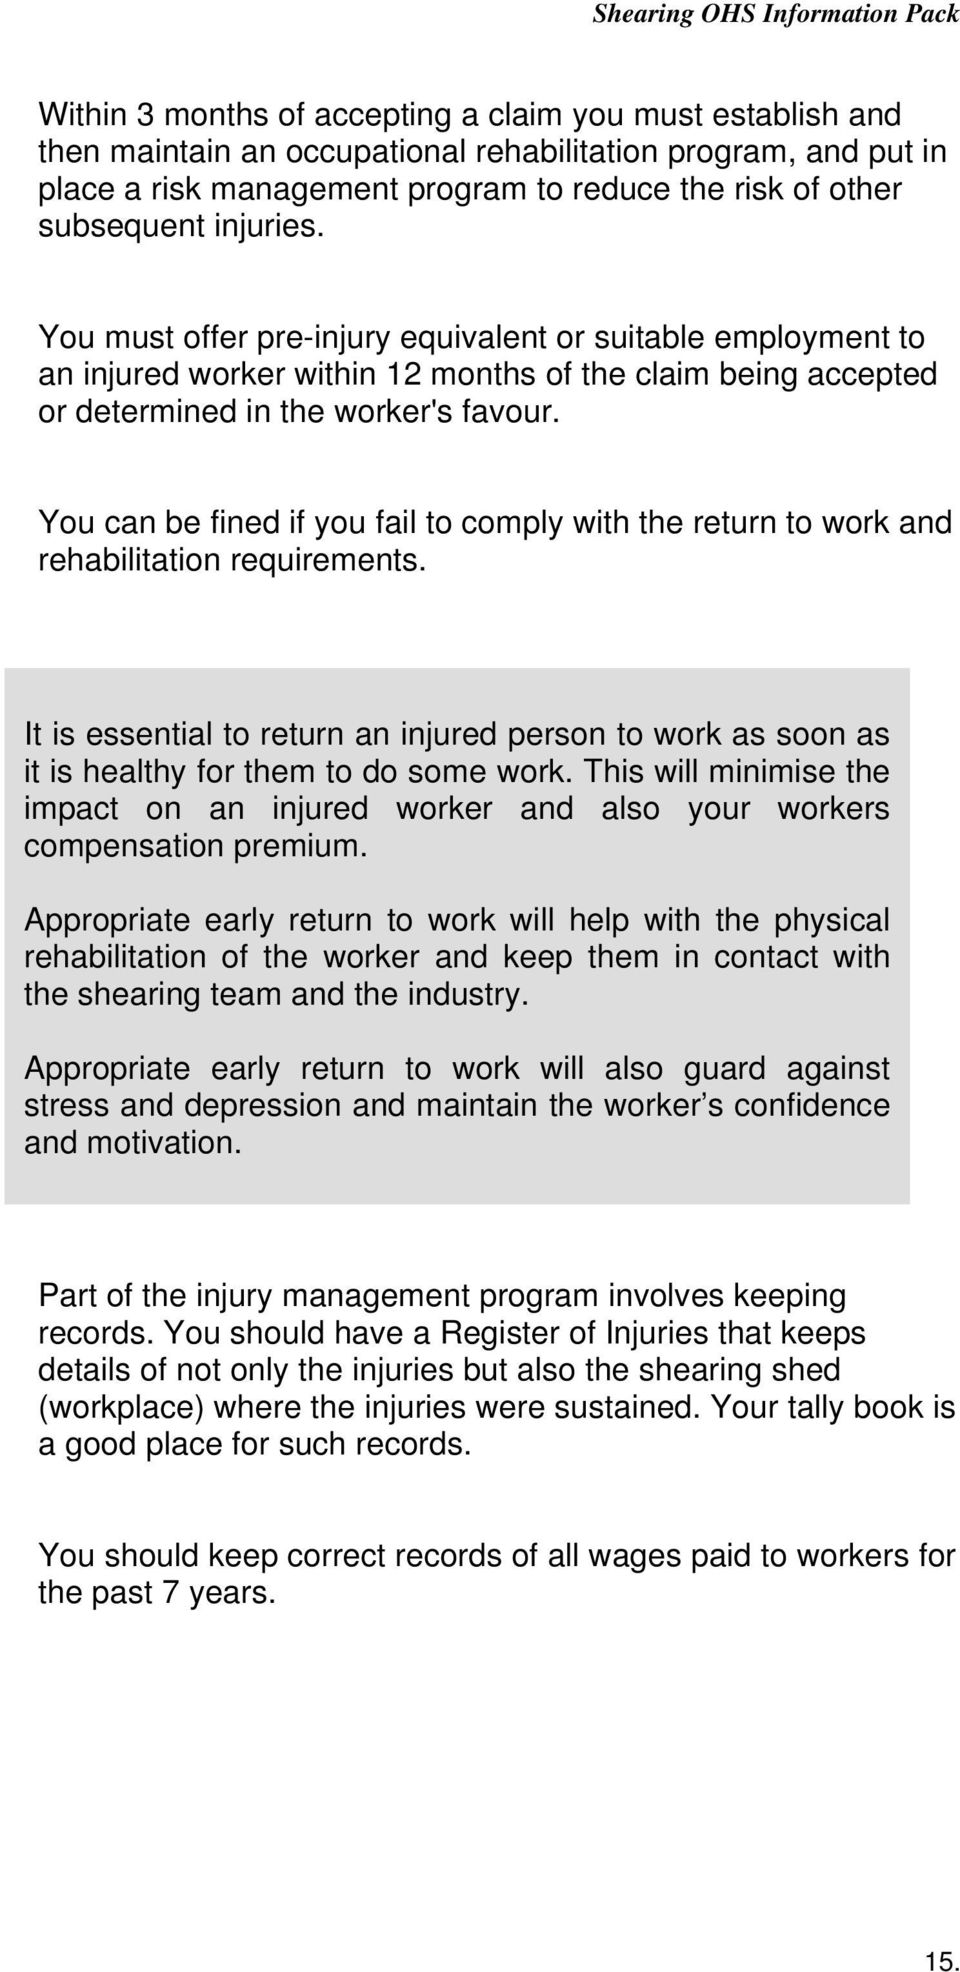 You can be fined if you fail to comply with the return to work and rehabilitation requirements. It is essential to return an injured person to work as soon as it is healthy for them to do some work.